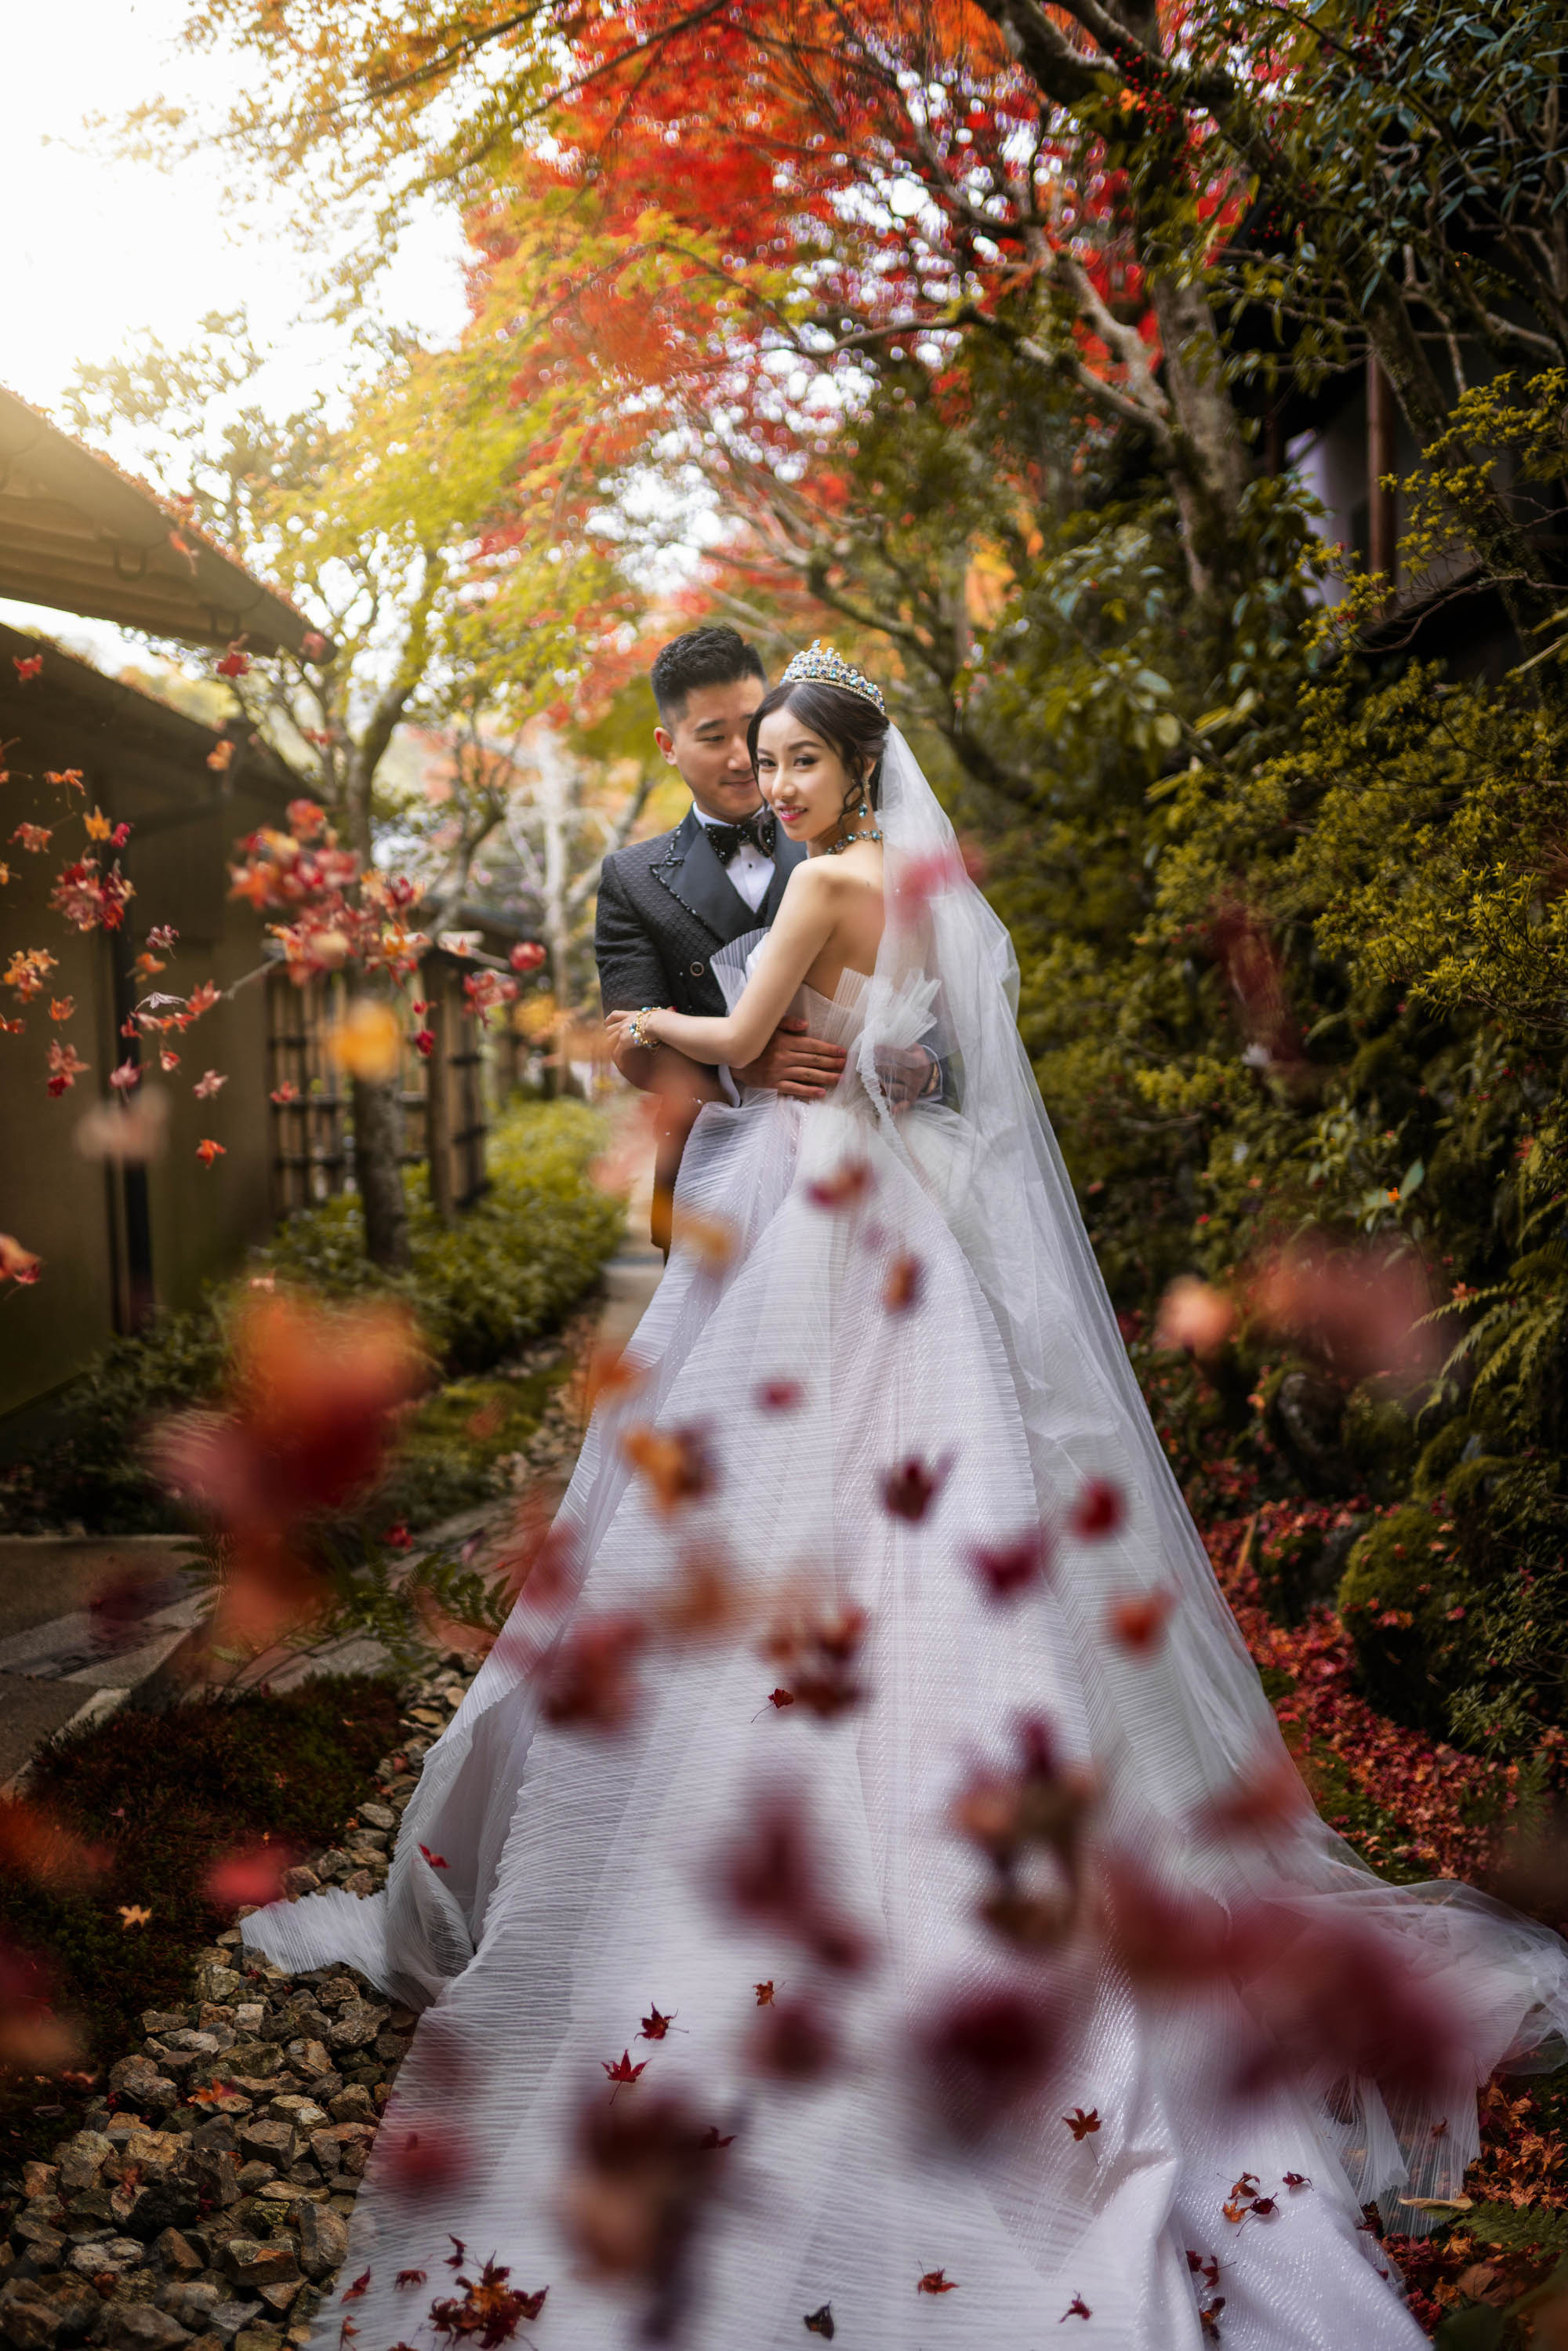 bride-and-groom-portrait-fall-leaves-worlds-best-wedding-photos-cm-leung-china-wedding-photographers